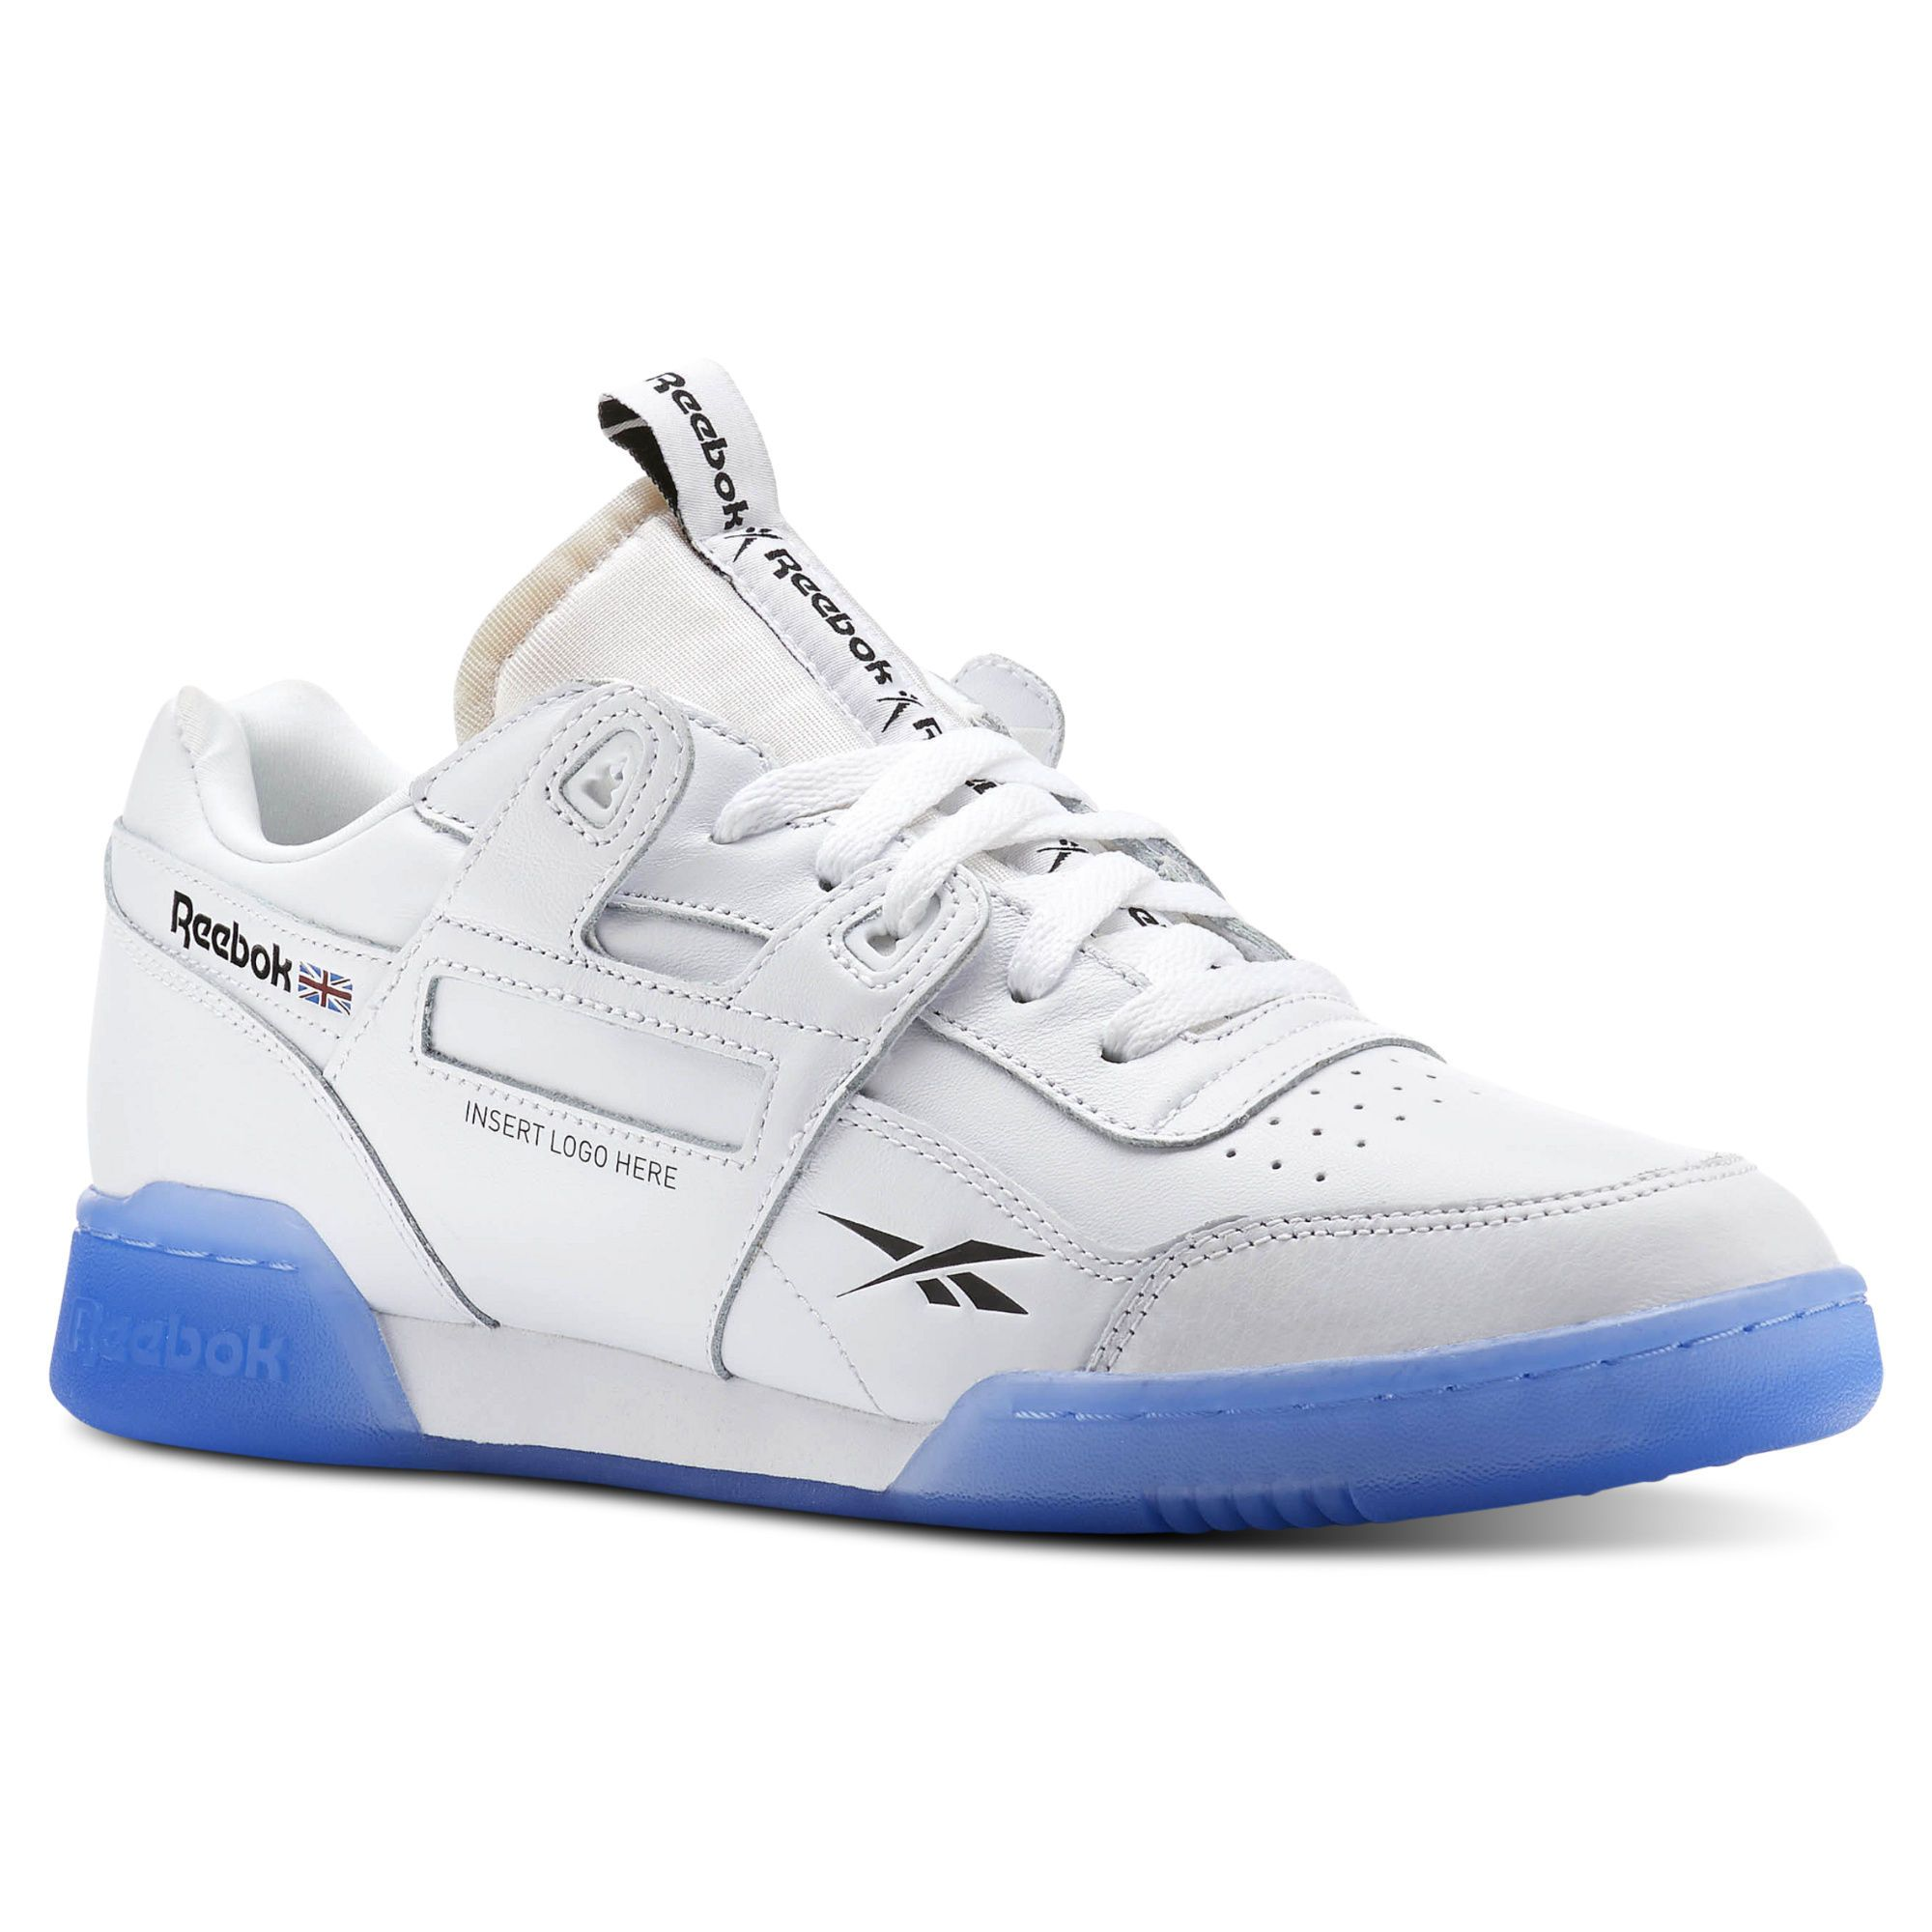 Shop For Workout Plus 3am White At Reebok Com See All The Styles And Colors Of Workout Plus 3am White Sneakers Fashion Reebok Shoes Diy Clothes And Shoes